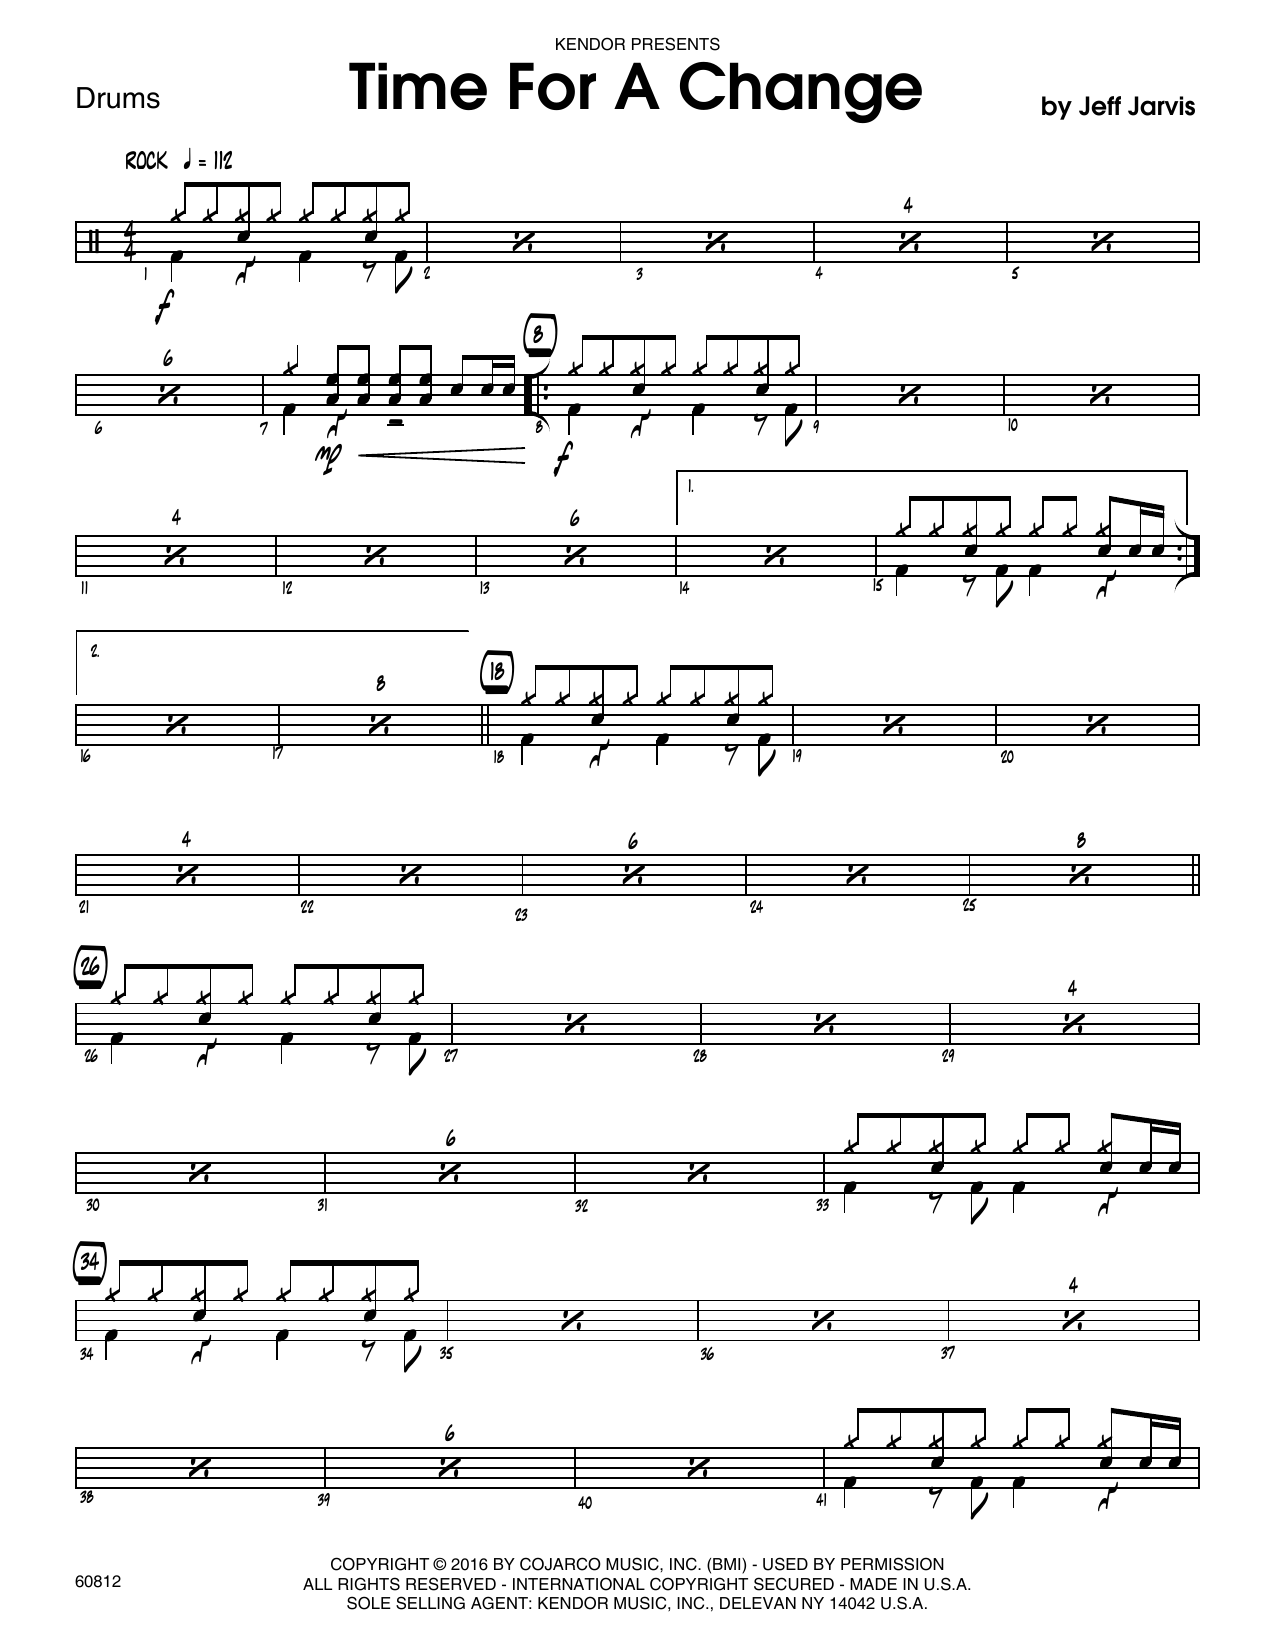 Time For A Change - Drum Set Sheet Music